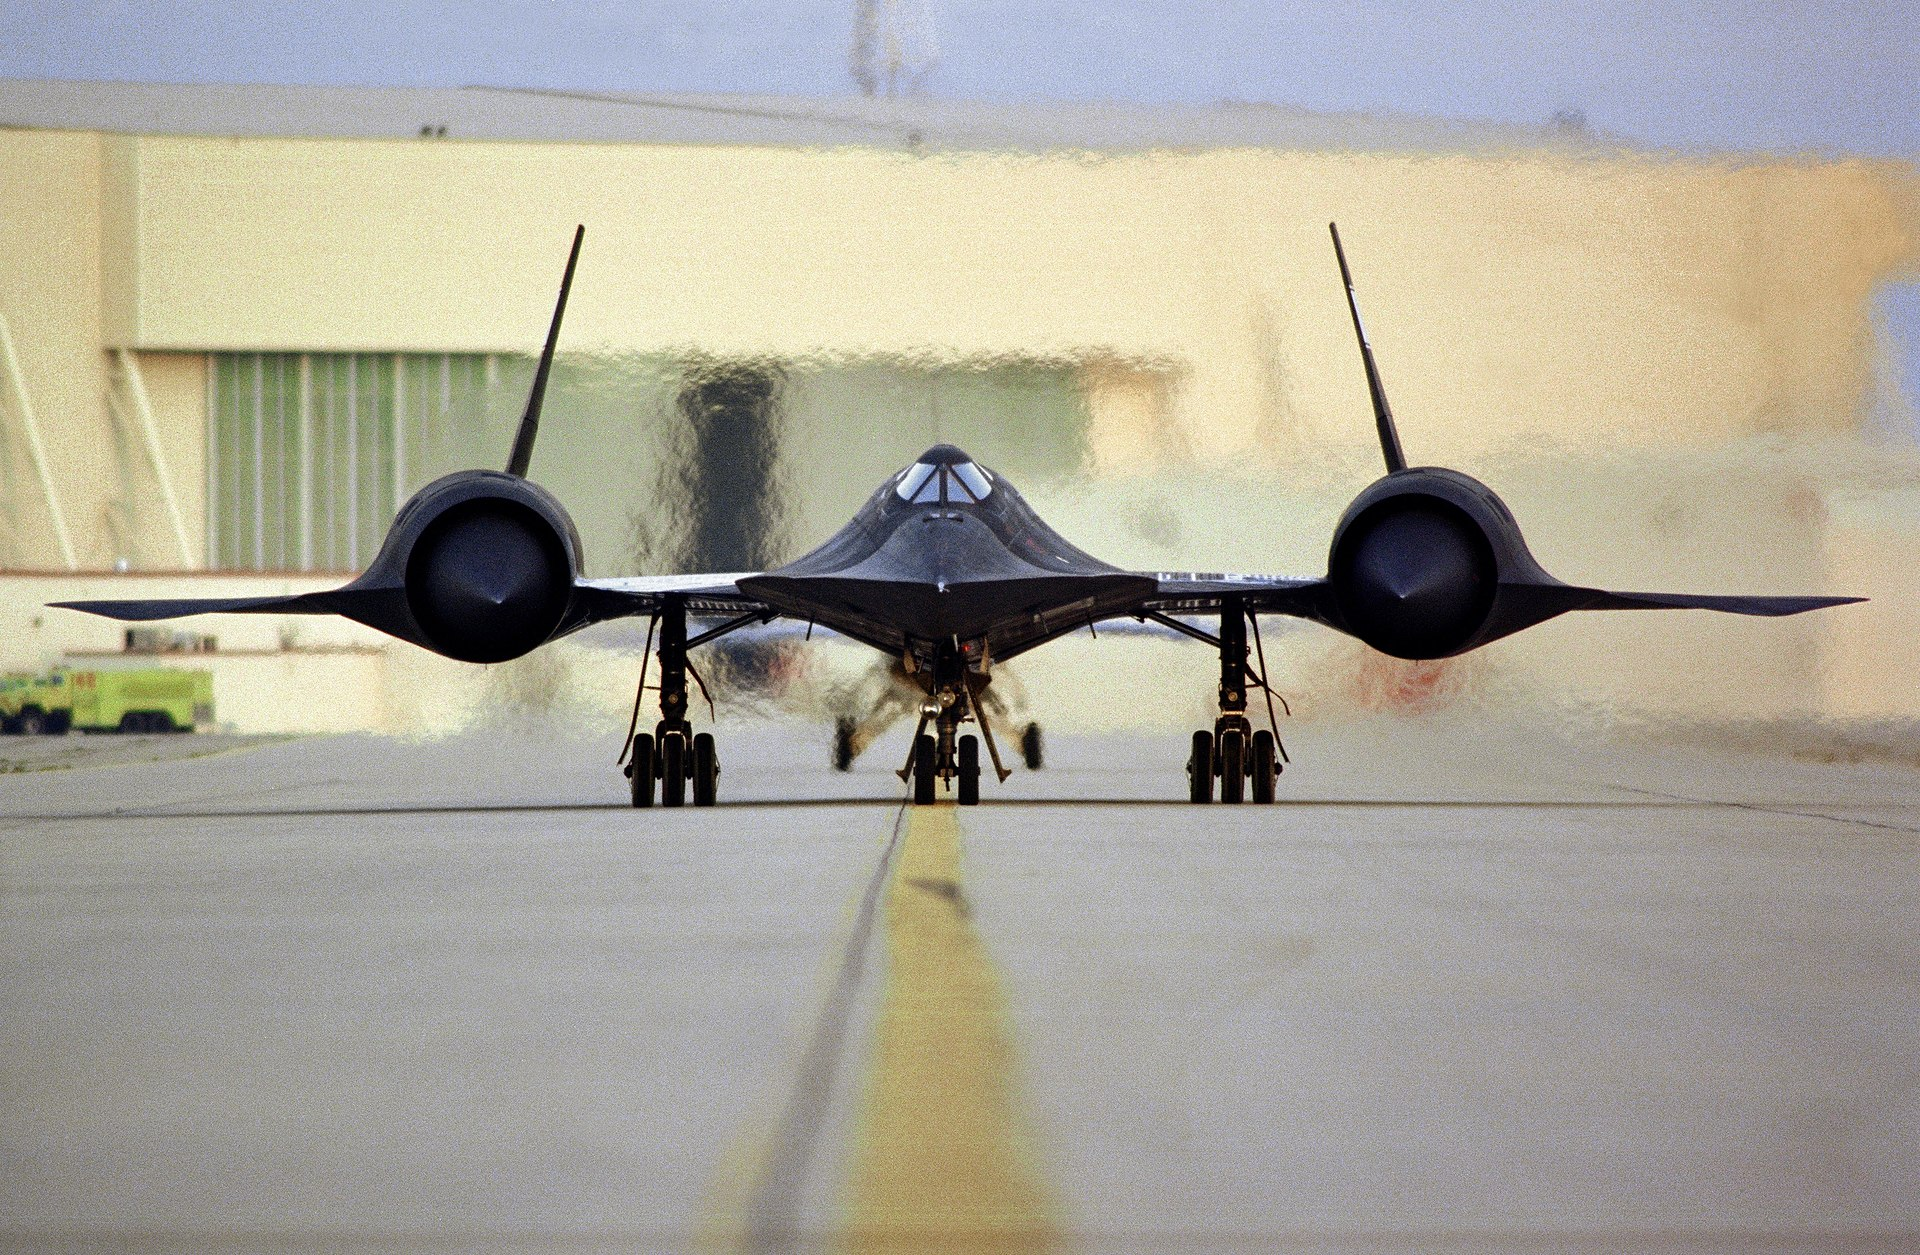 Lockheed SR-71, On runway, engines on